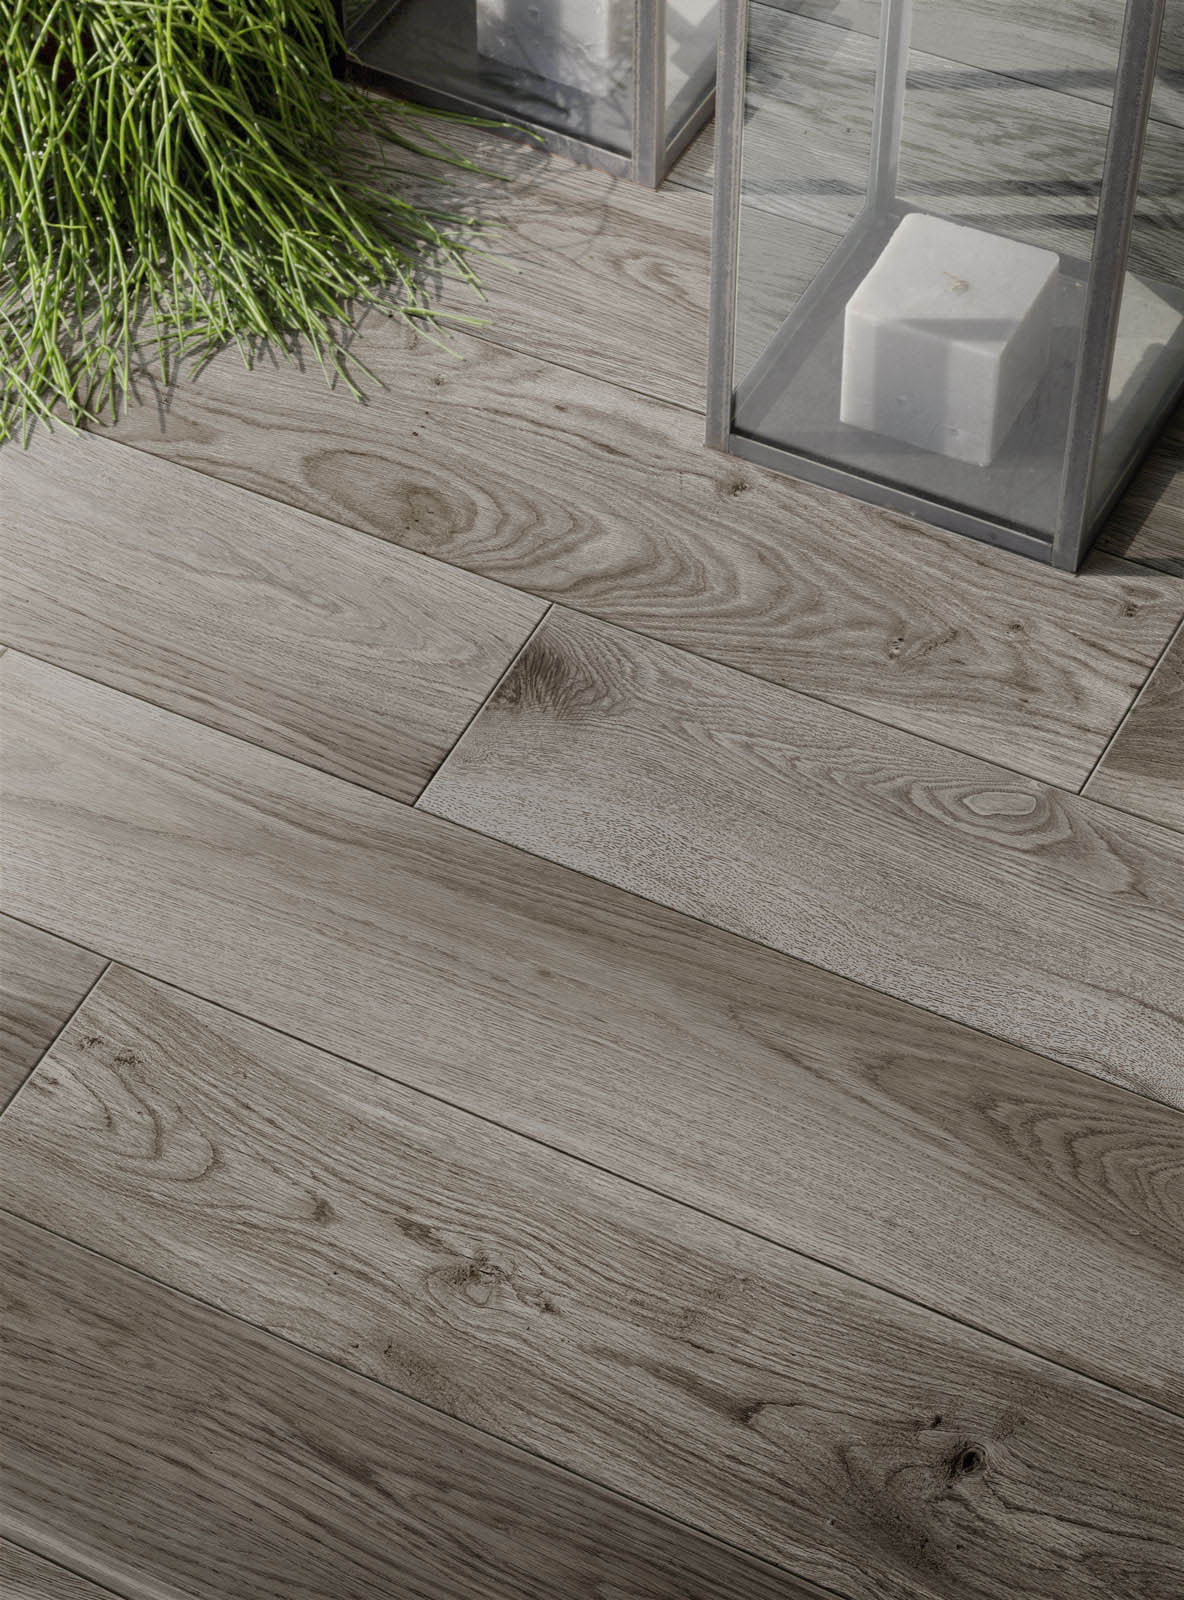 Wood effect and hardwood porcelain stoneware marazzi for Marazzi tile